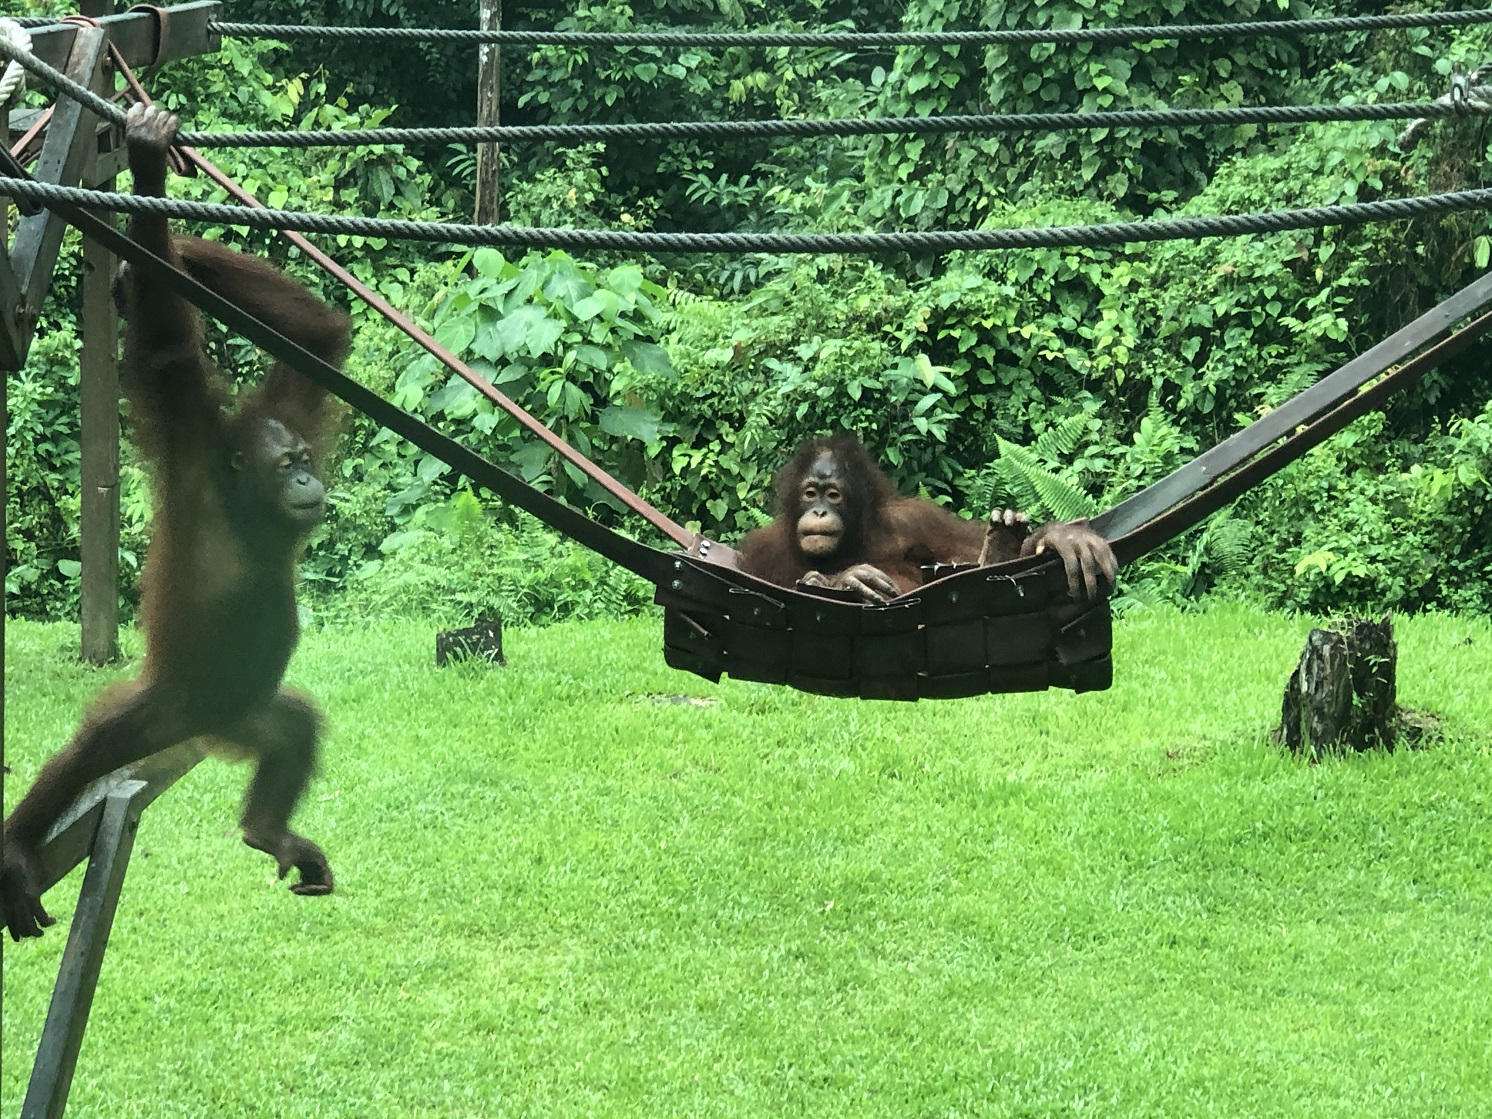 The nursery at Sepilok provides orphaned orangutans the opportunity to acquire 'life-skills' such as climbing